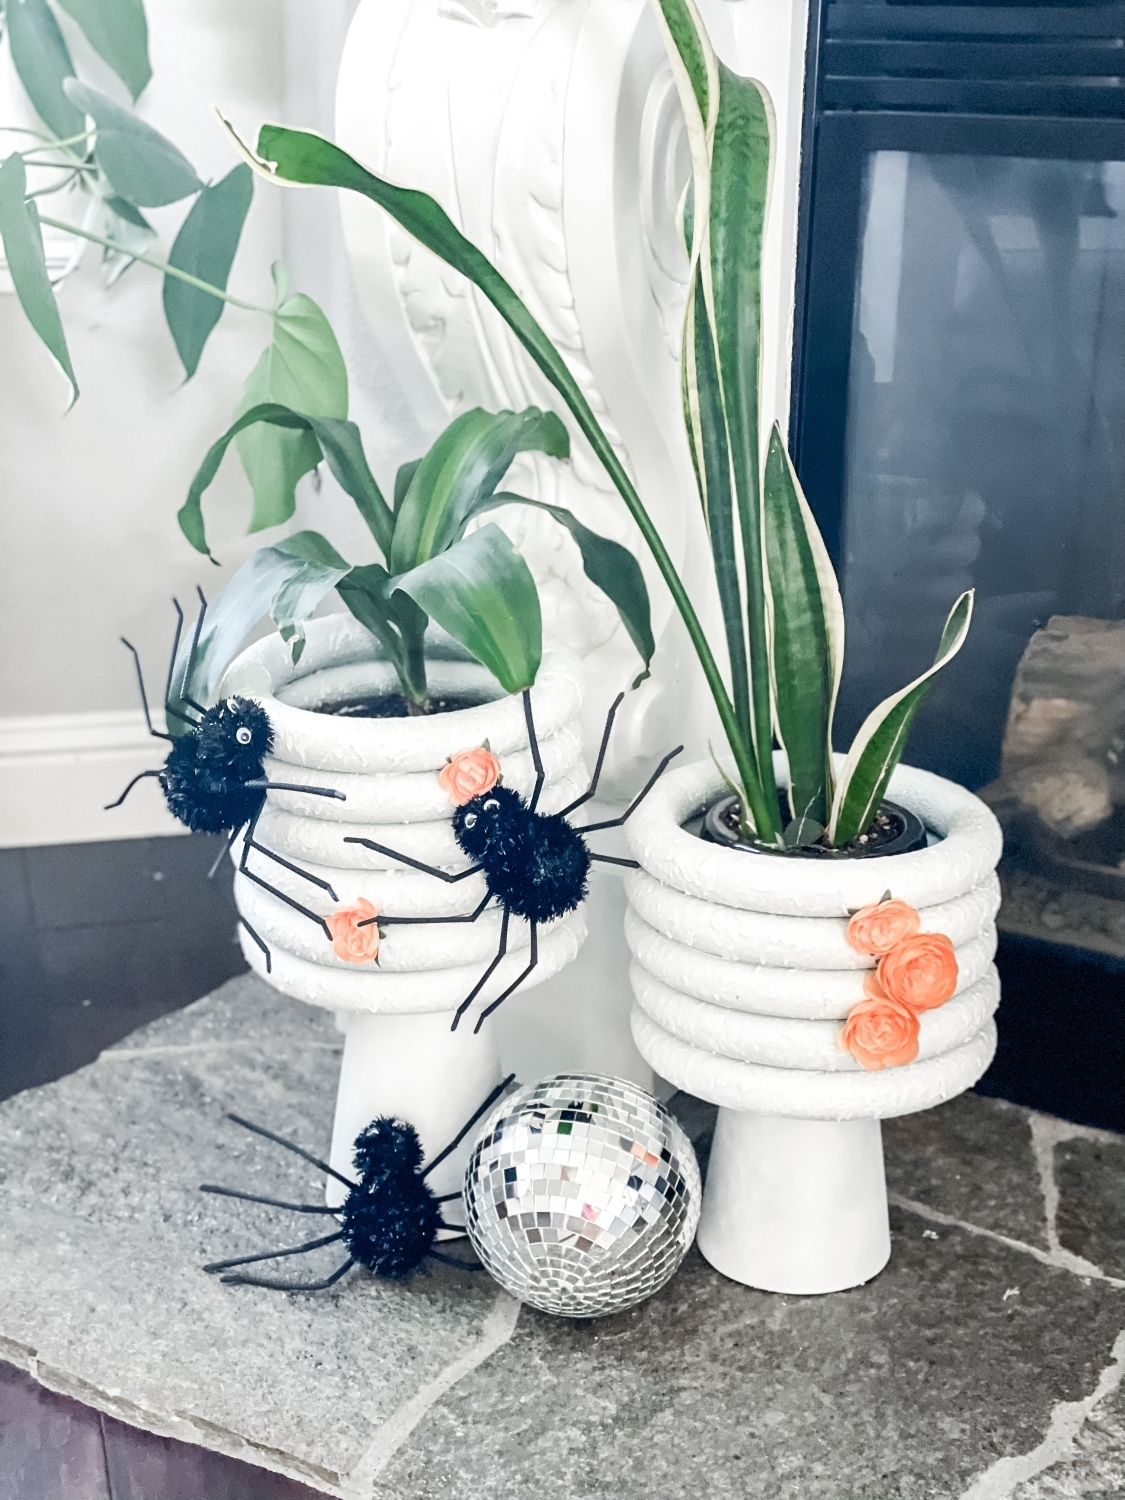 Embellish planters with Halloween items